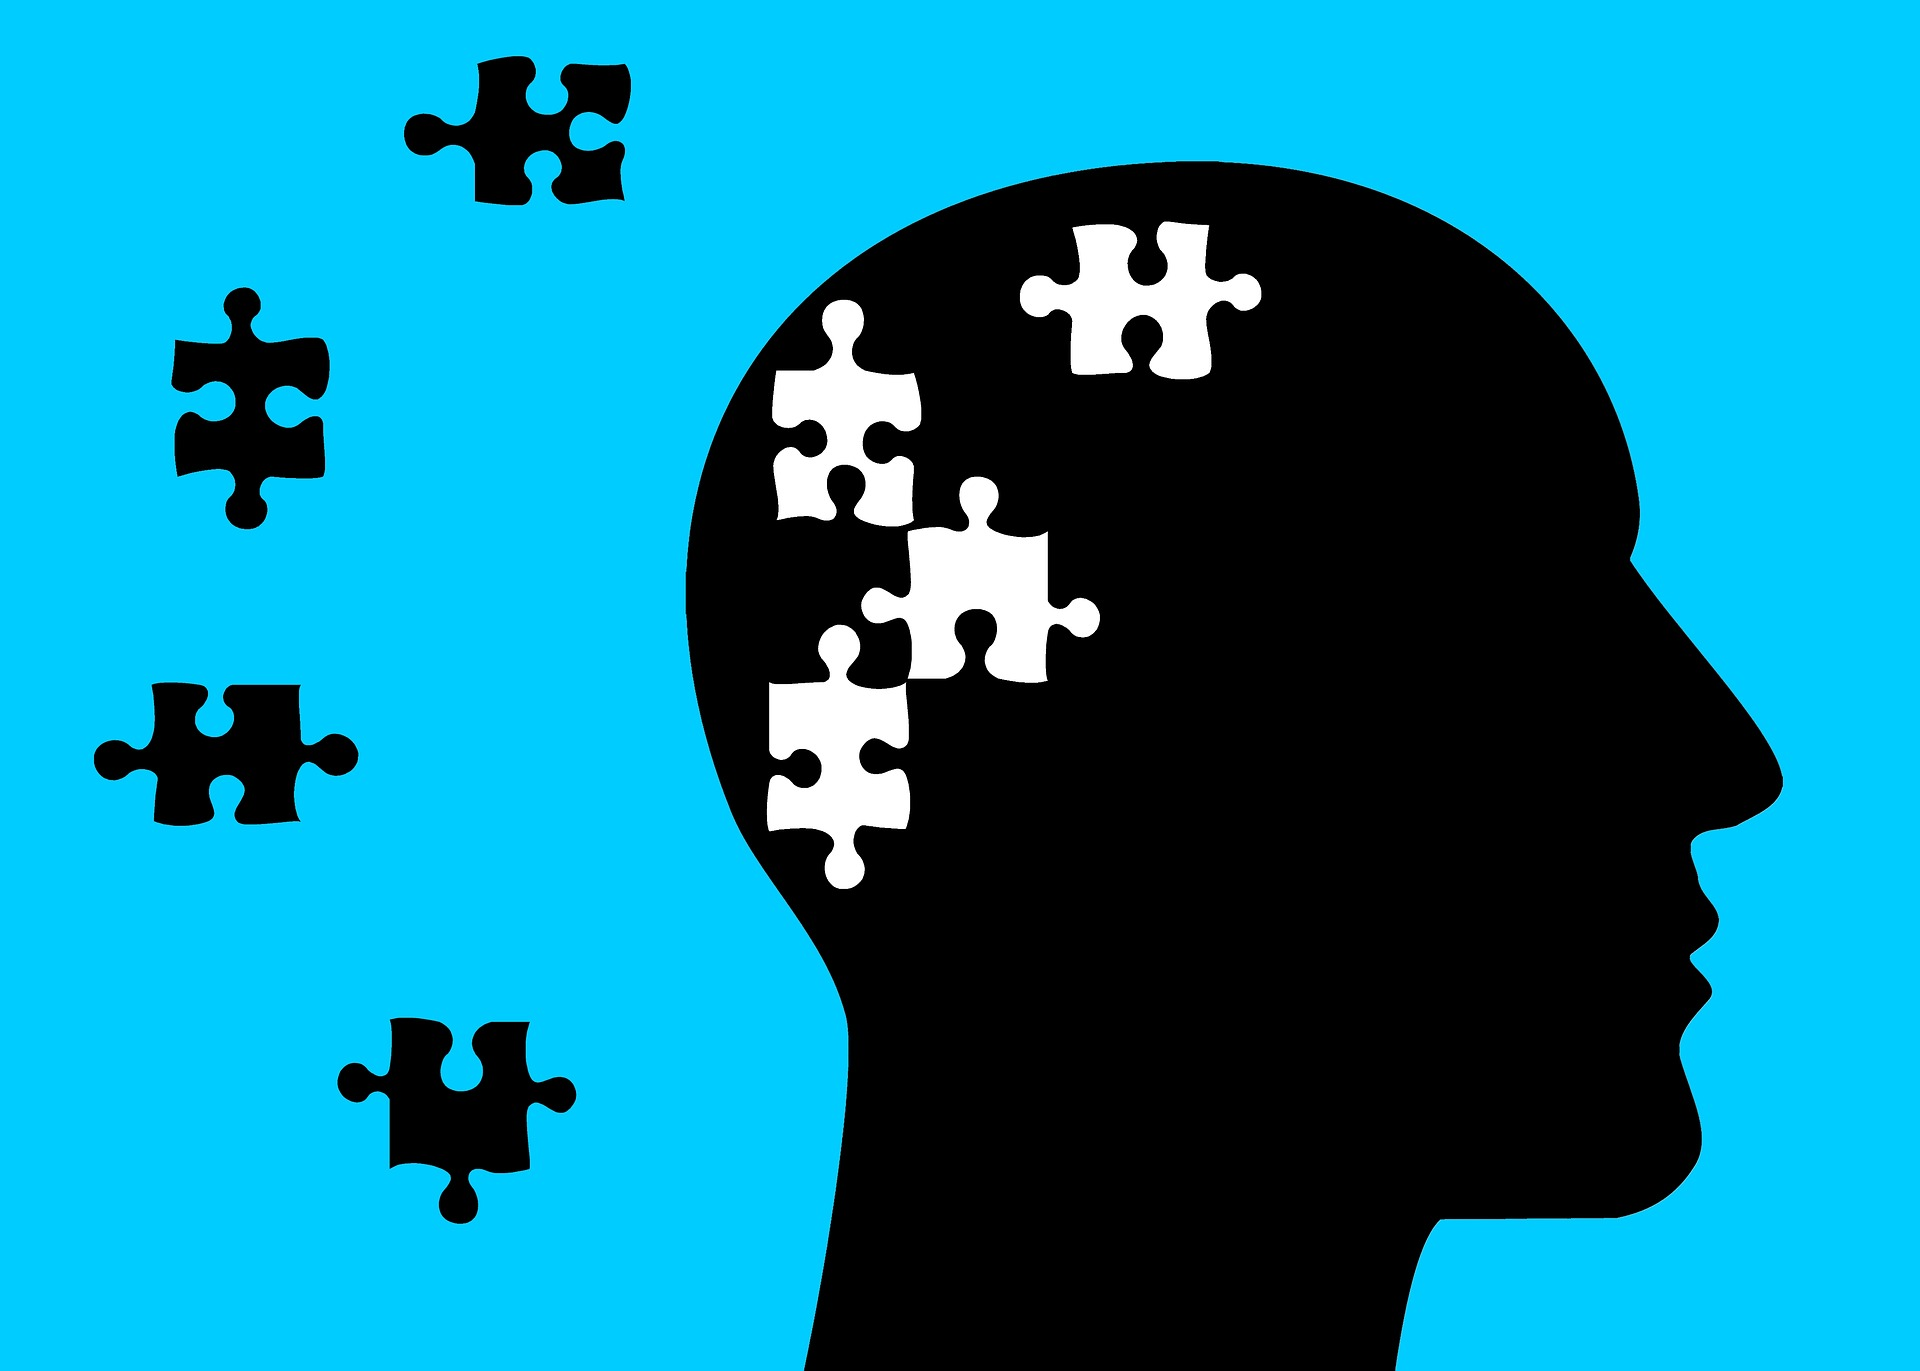 Image of a Head with missing puzzle pieces